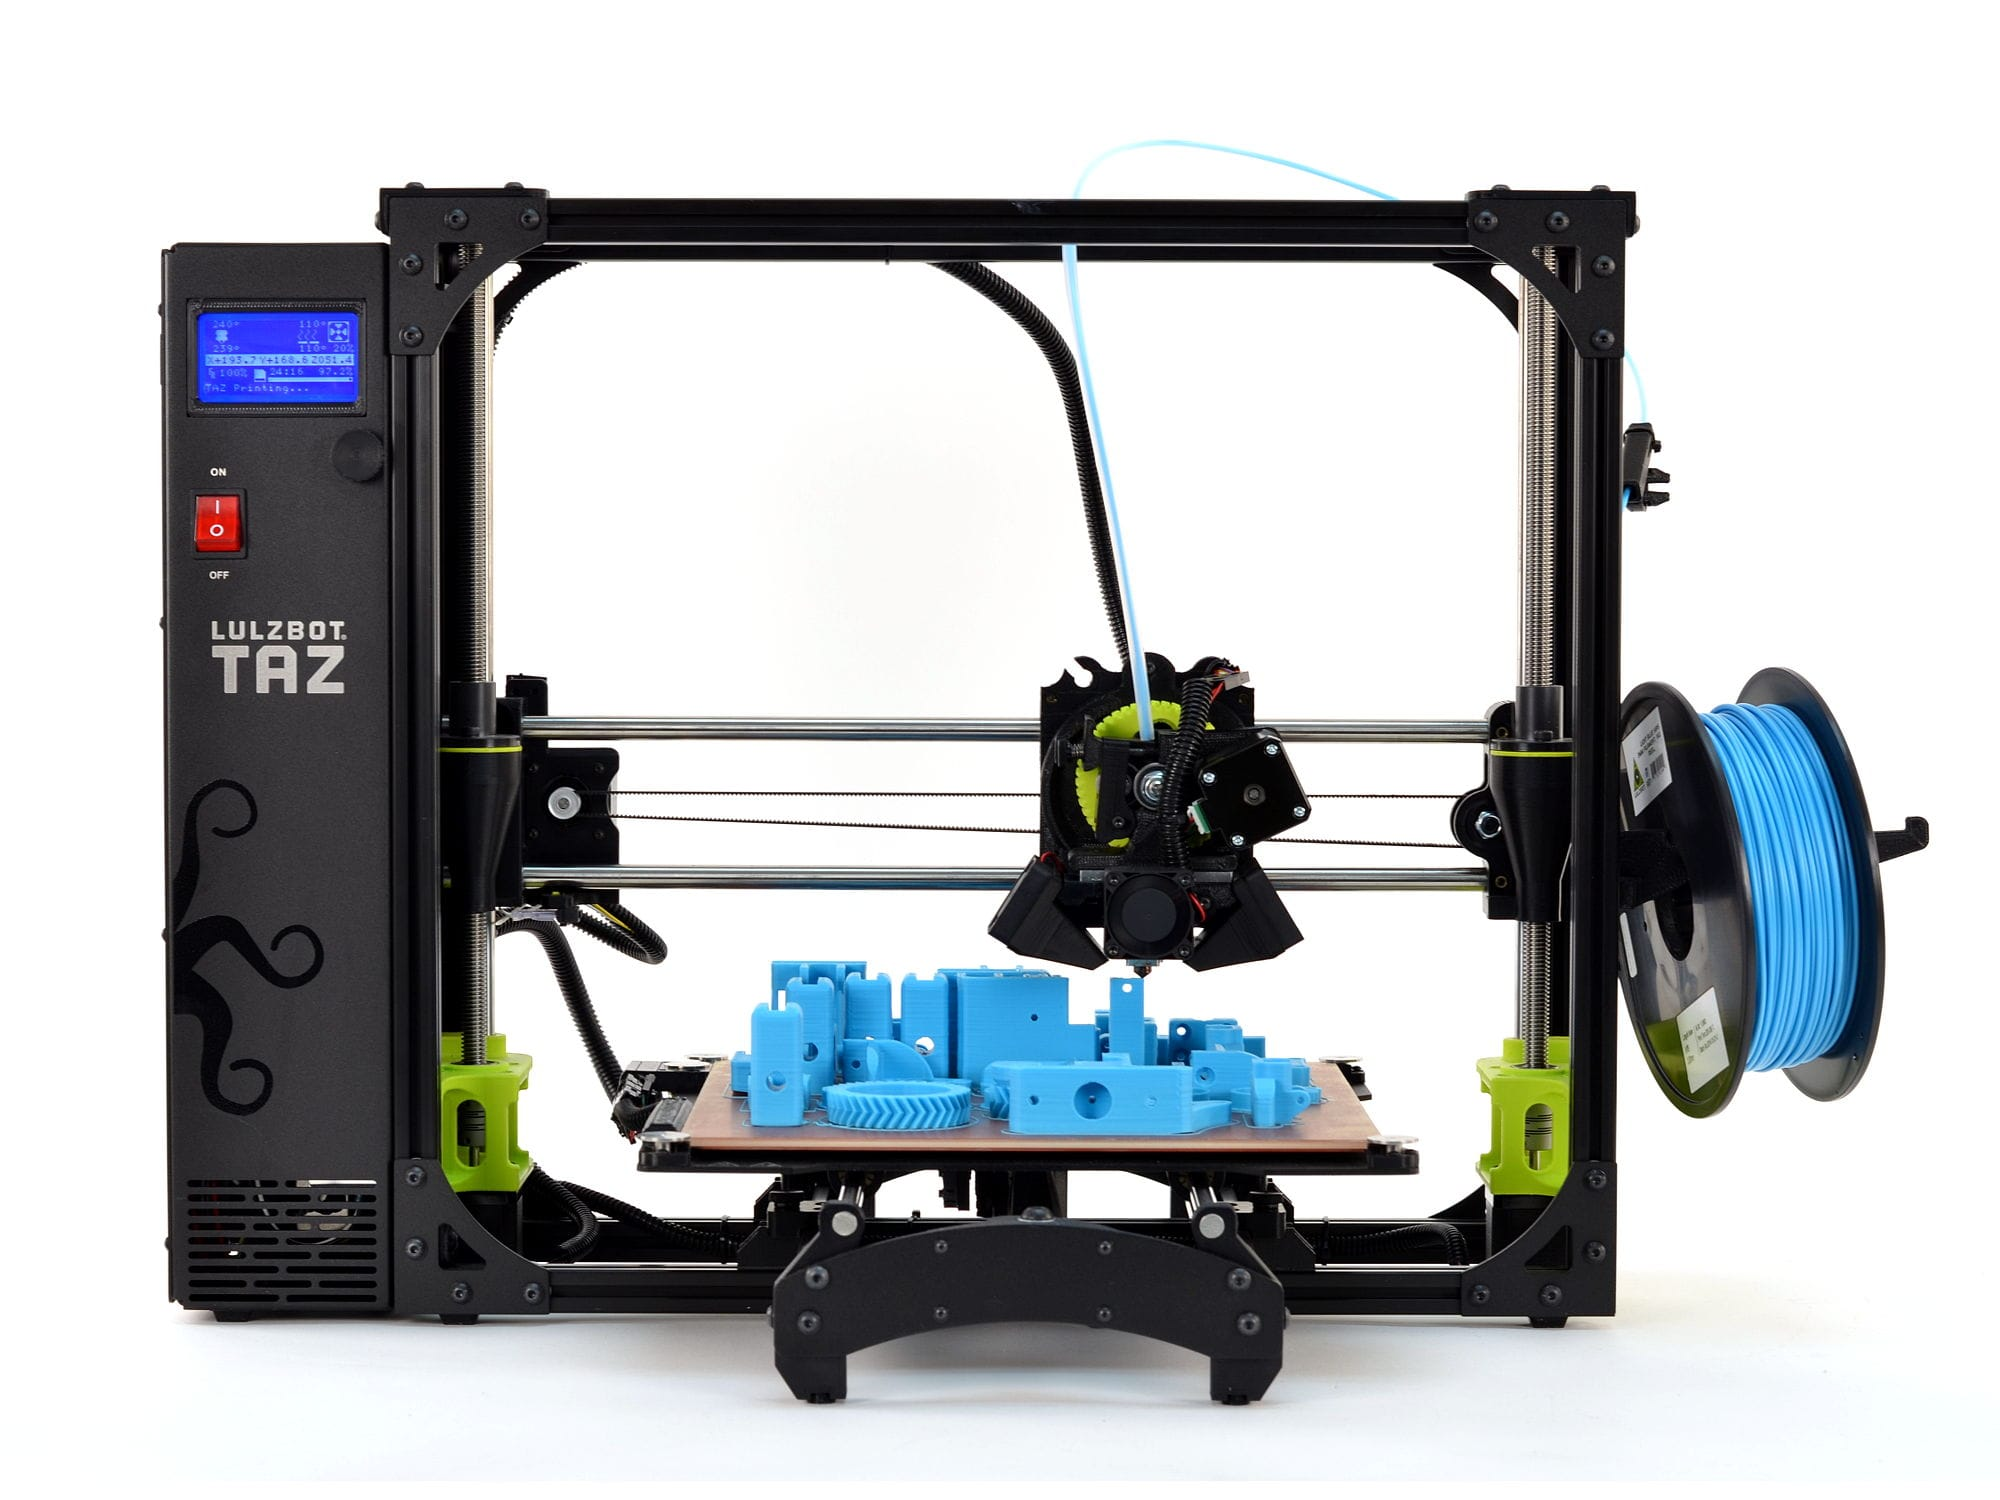 The TAZ 6 3D printer is used by the military [Source: Aleph Objects]